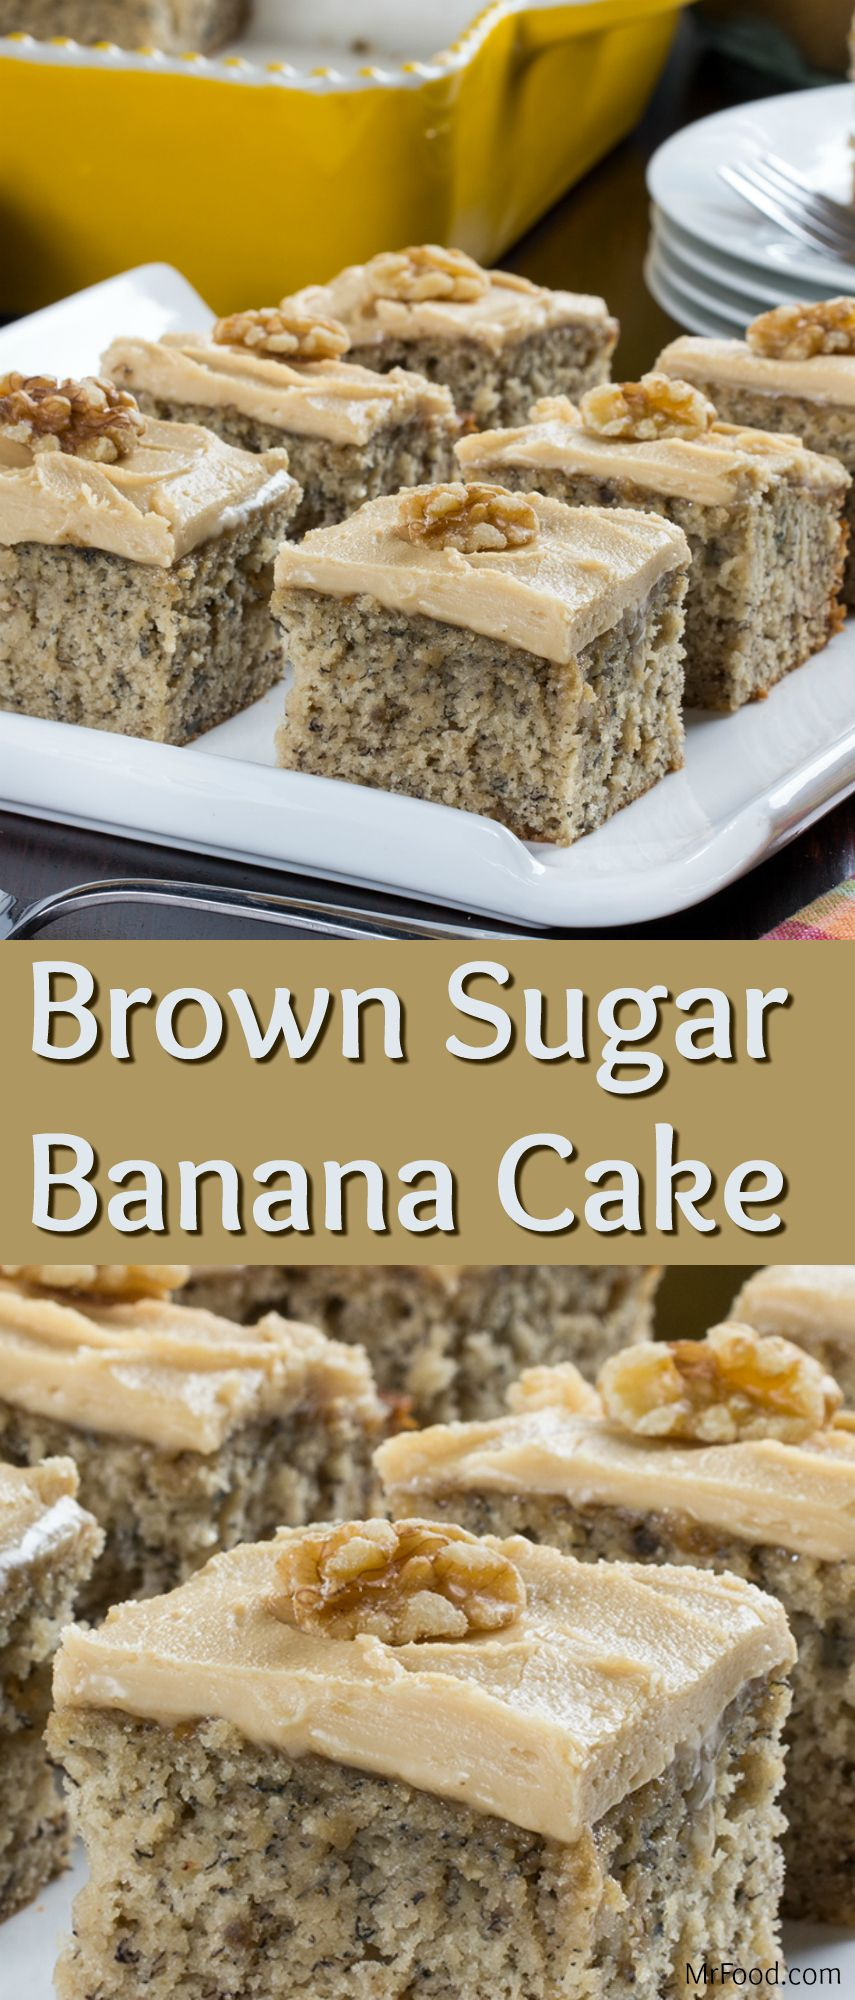 Photo of Brown Sugar Banana Cake